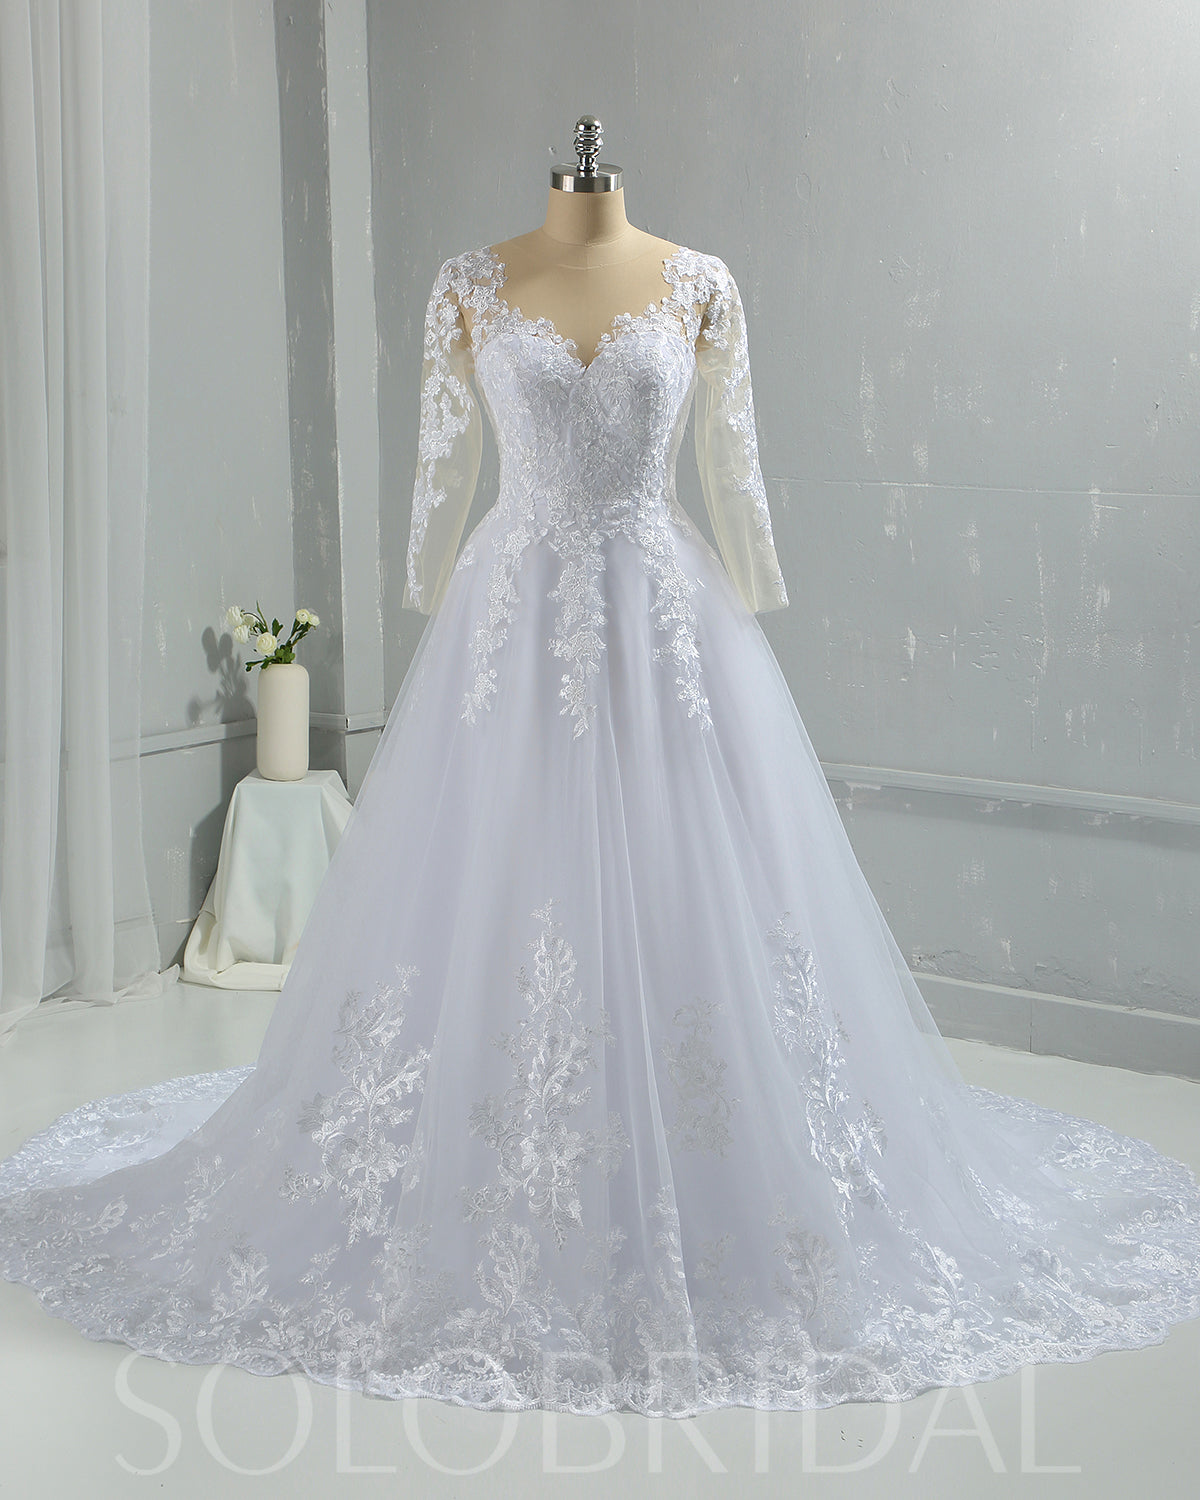 Sweetheart Cotton Lace Skin Color Bodice Long Sleeve Wedding Dress with Court Train